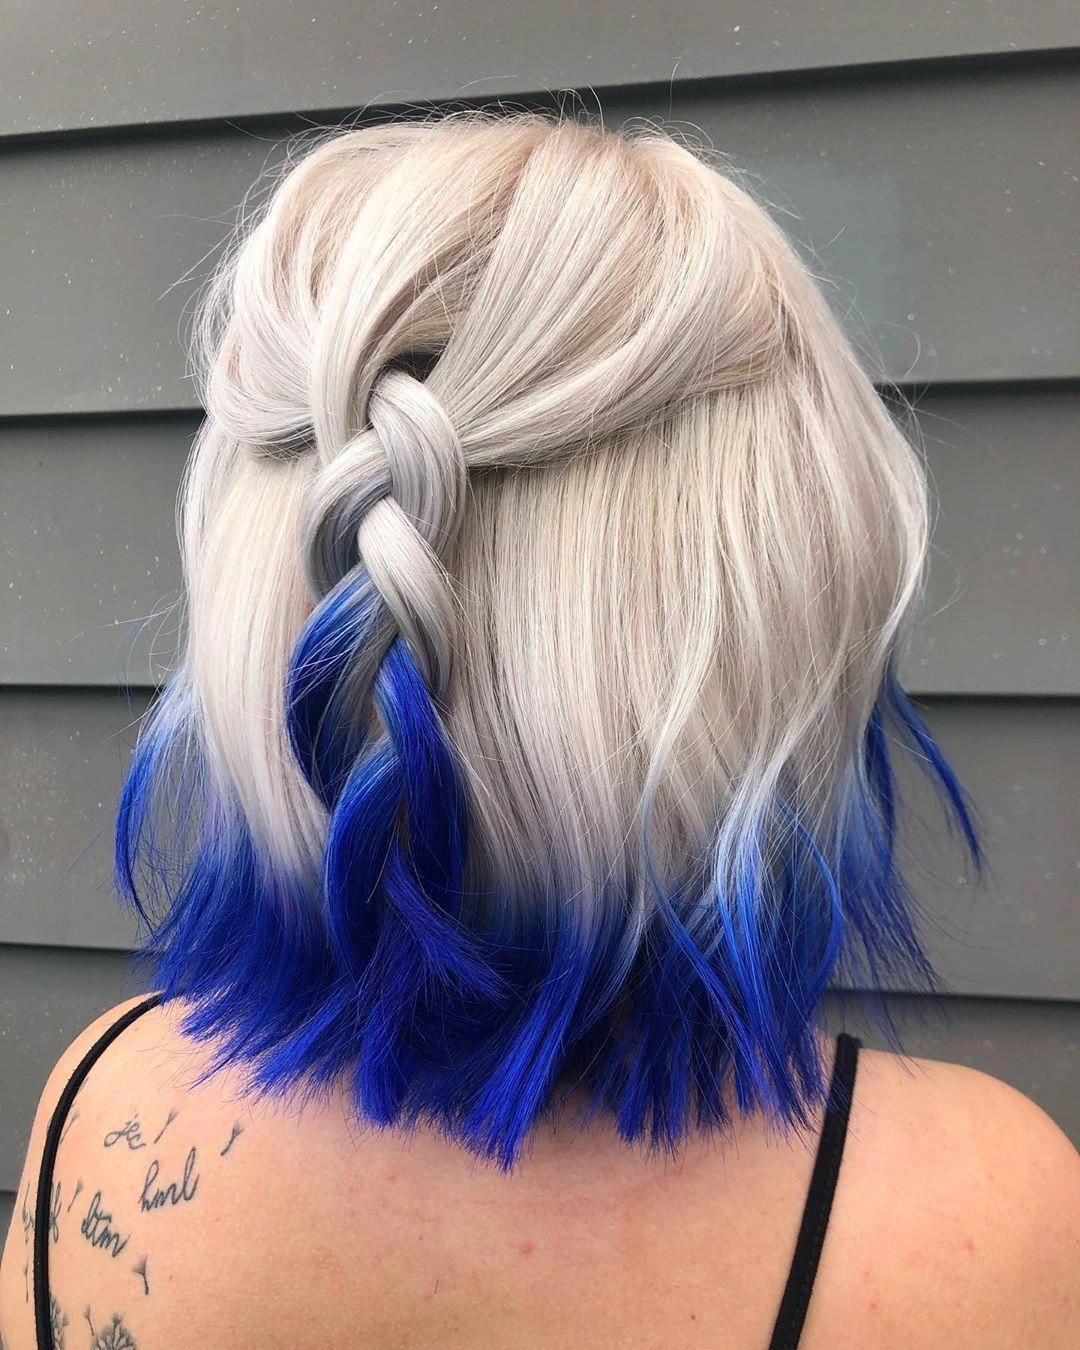 Arctic Fox Hair Color Veronicaanowak Just The Tips I Love Doing This Kind Of Stuff More Dip Dye Pleaaaase In 2020 Hair Styles Hair Dye Colors Arctic Fox Hair Color